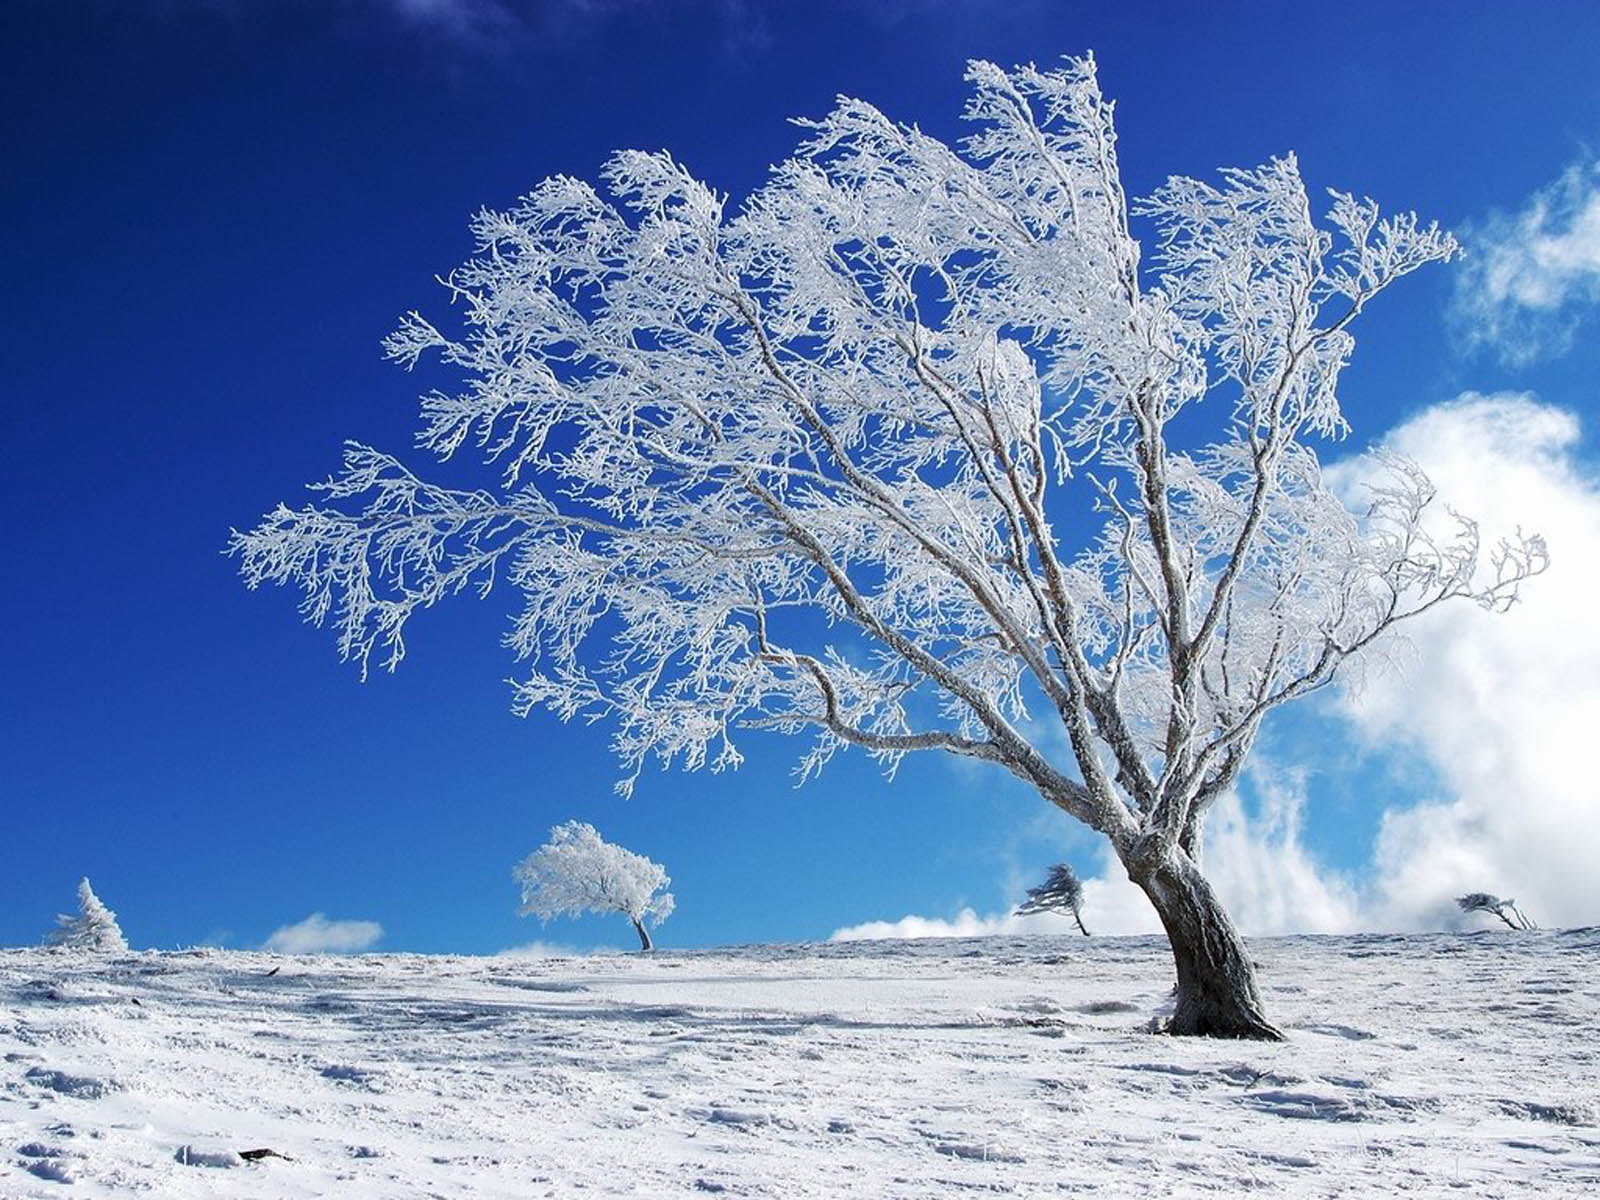 3d winter scenes wallpaper - photo #23